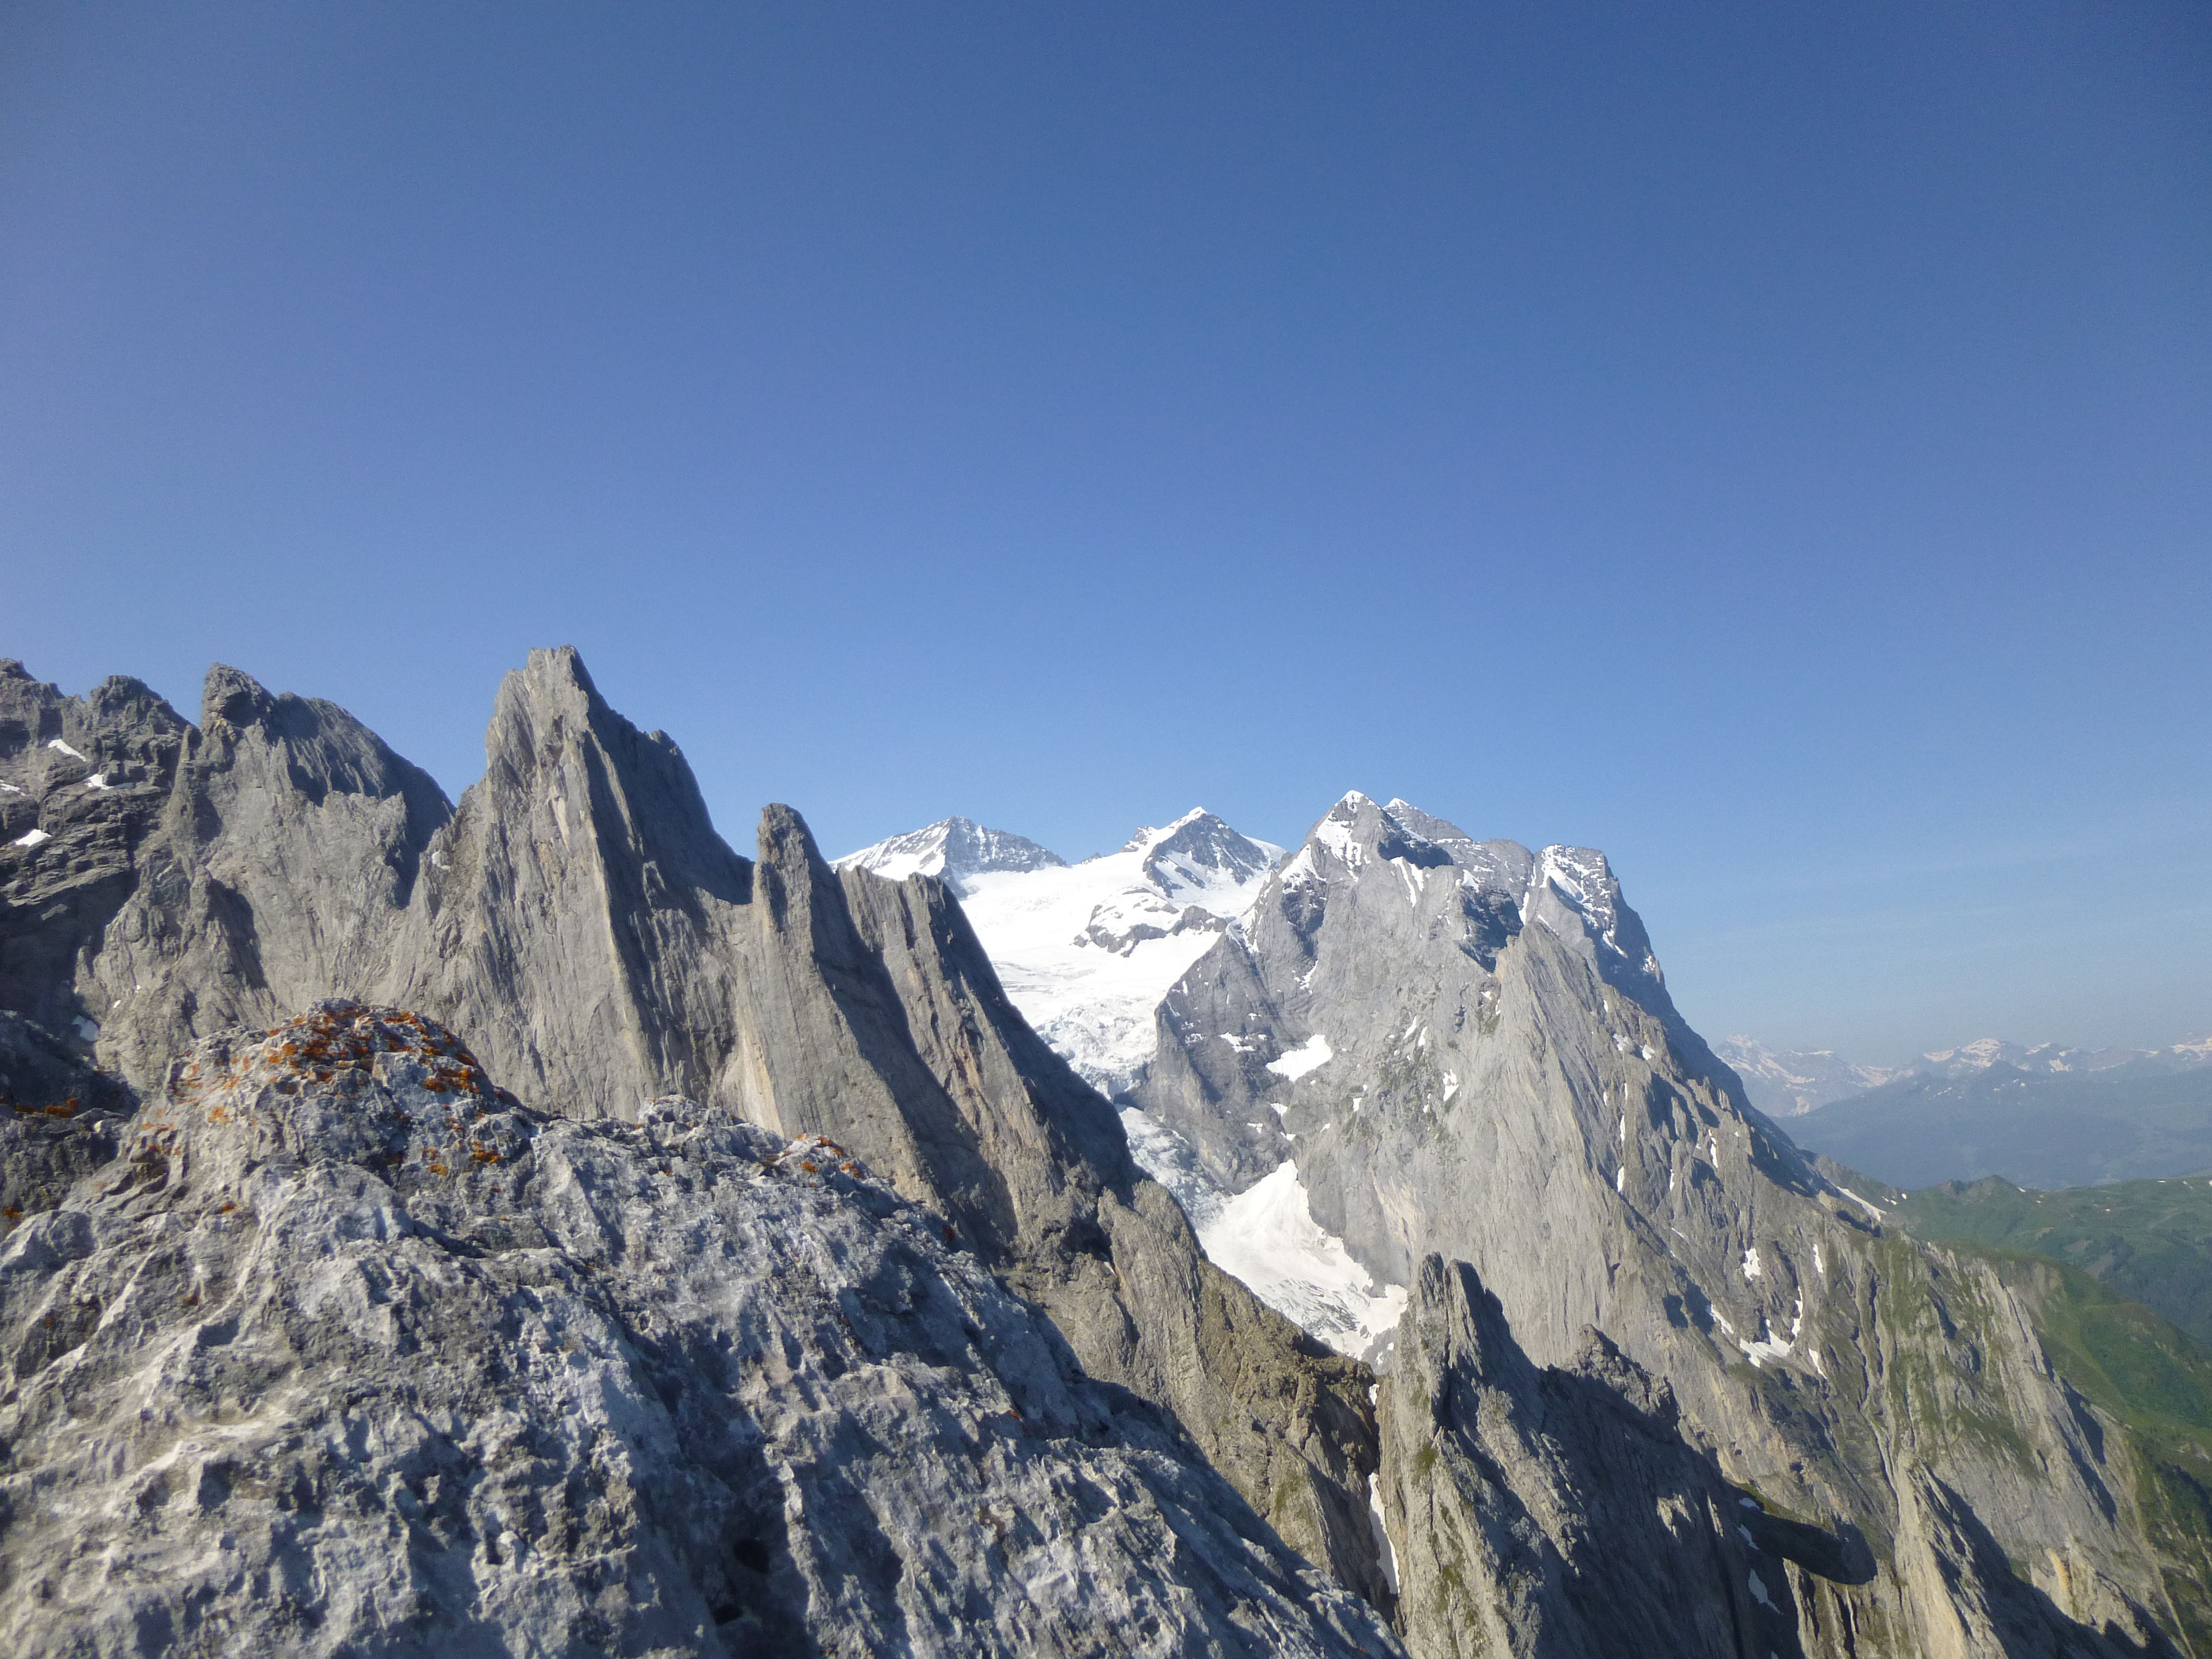 Looking west into the Oberland from the Engelhorner. The horizon from left to right: Froschkopf, Kingspitze, Kastor, Rosenhorn, Mittelhorn, Wellhorn and Wetterhorn with the huge face of the Scheideggwetterhorn to the right.